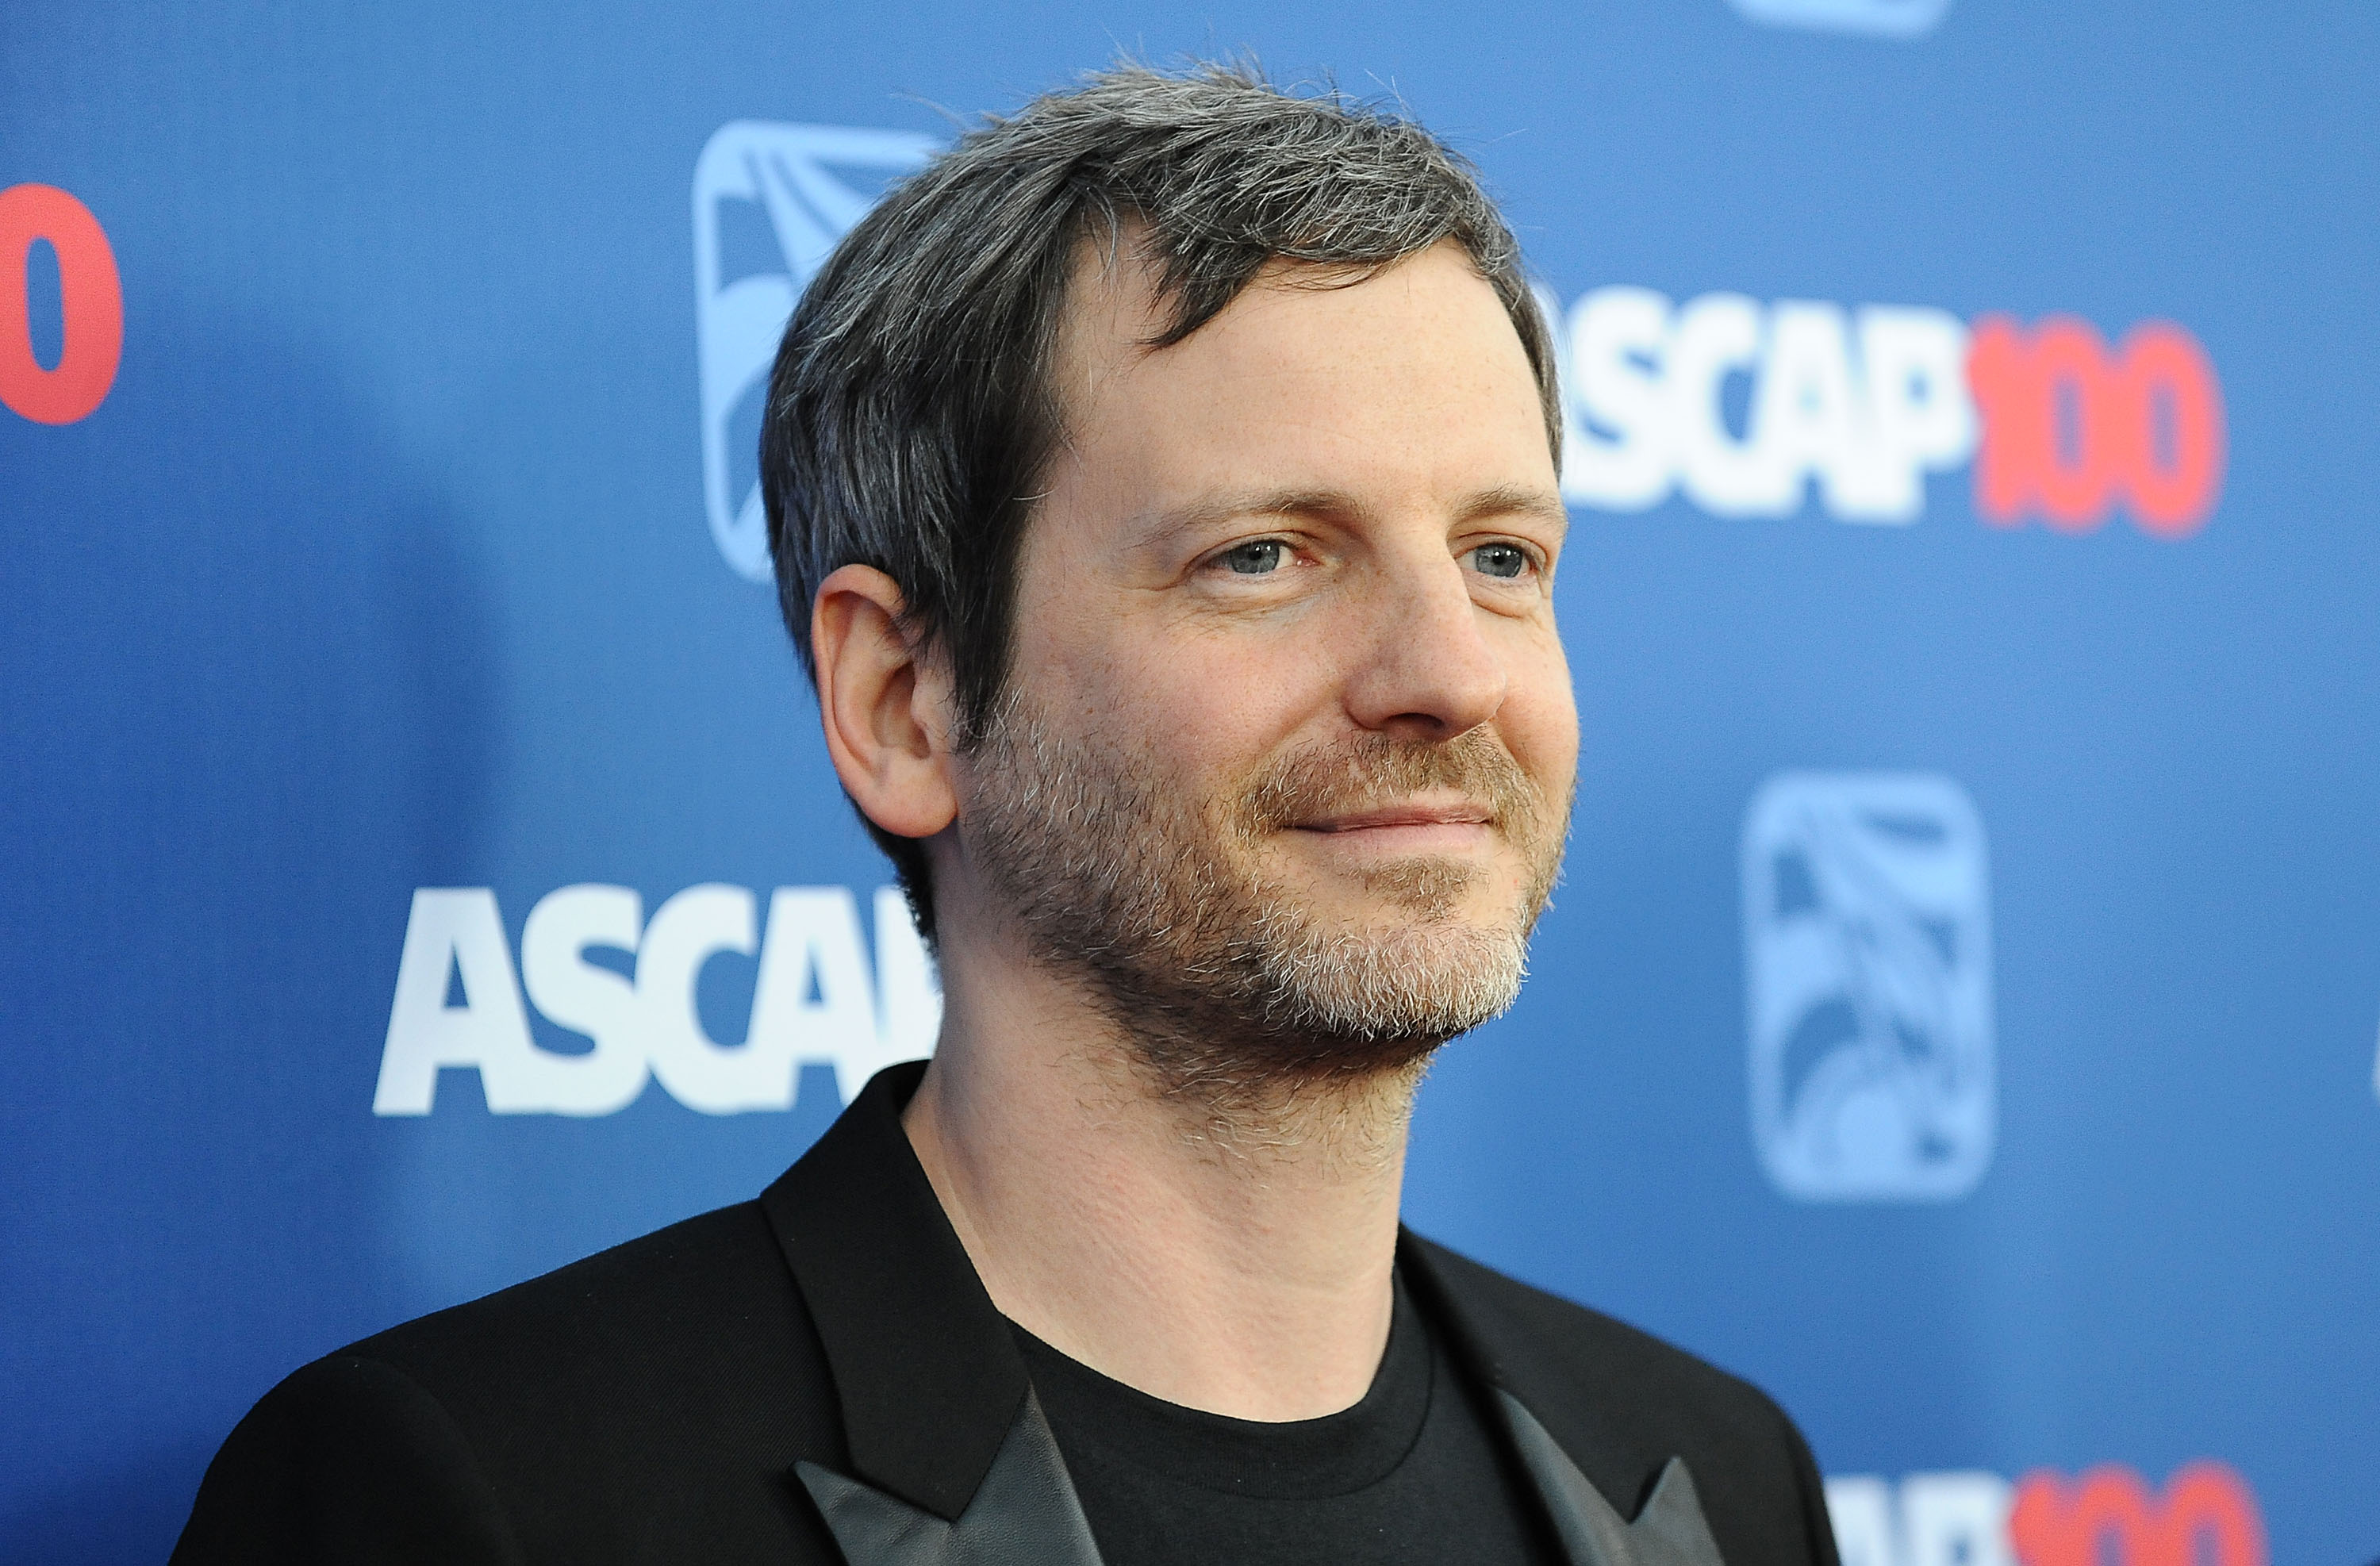 Producer Dr. Luke in Hollywood, CA, on April 23, 2014.